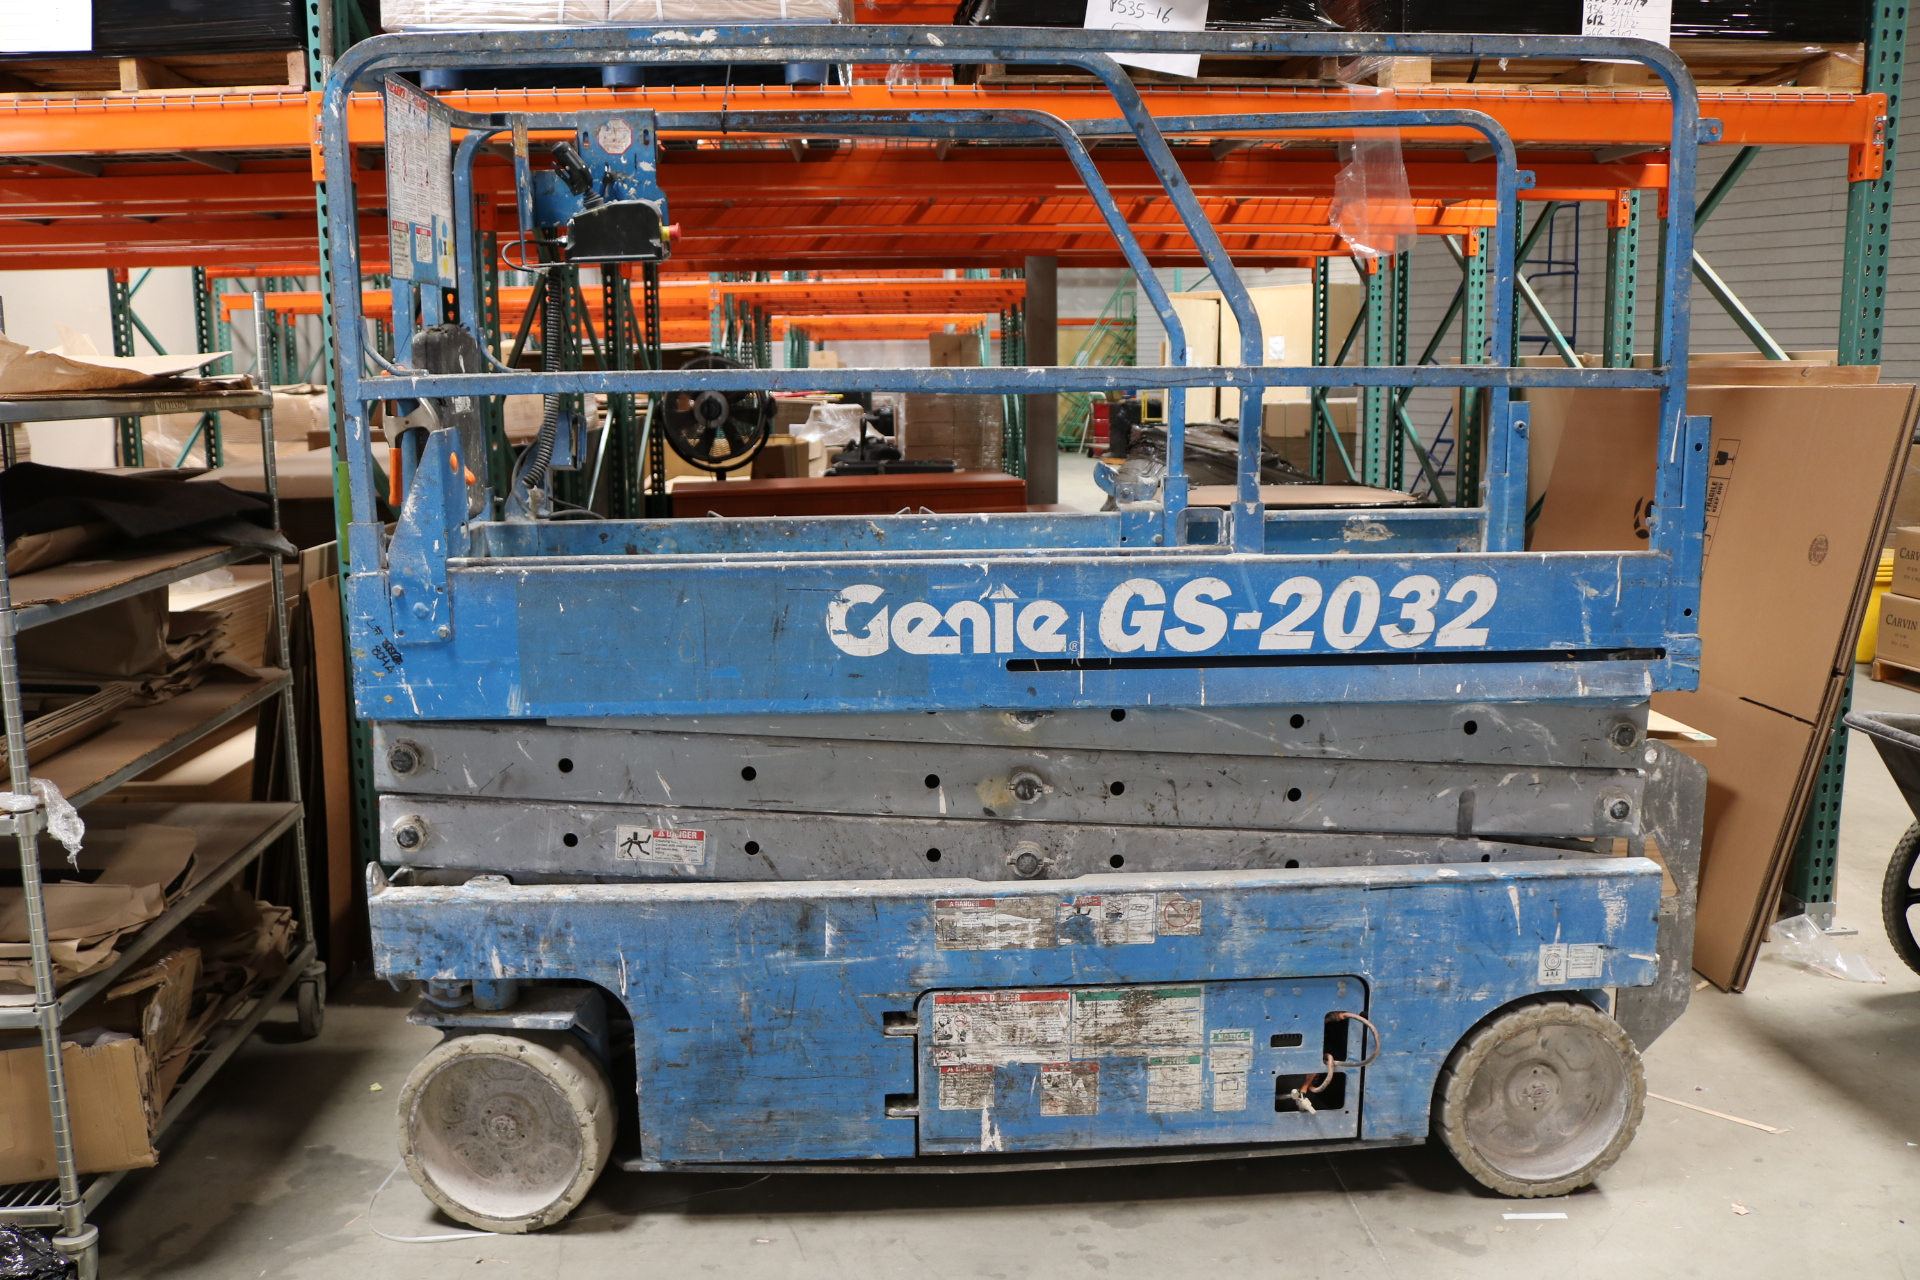 PRO AUDIO SPEAKER MANUFACTURER, 2018 LAGUNA ROUTERS, SCHELLING PANEL SAW, TOYOTA & HYSTER FORKLIFTS - Image 14 of 50